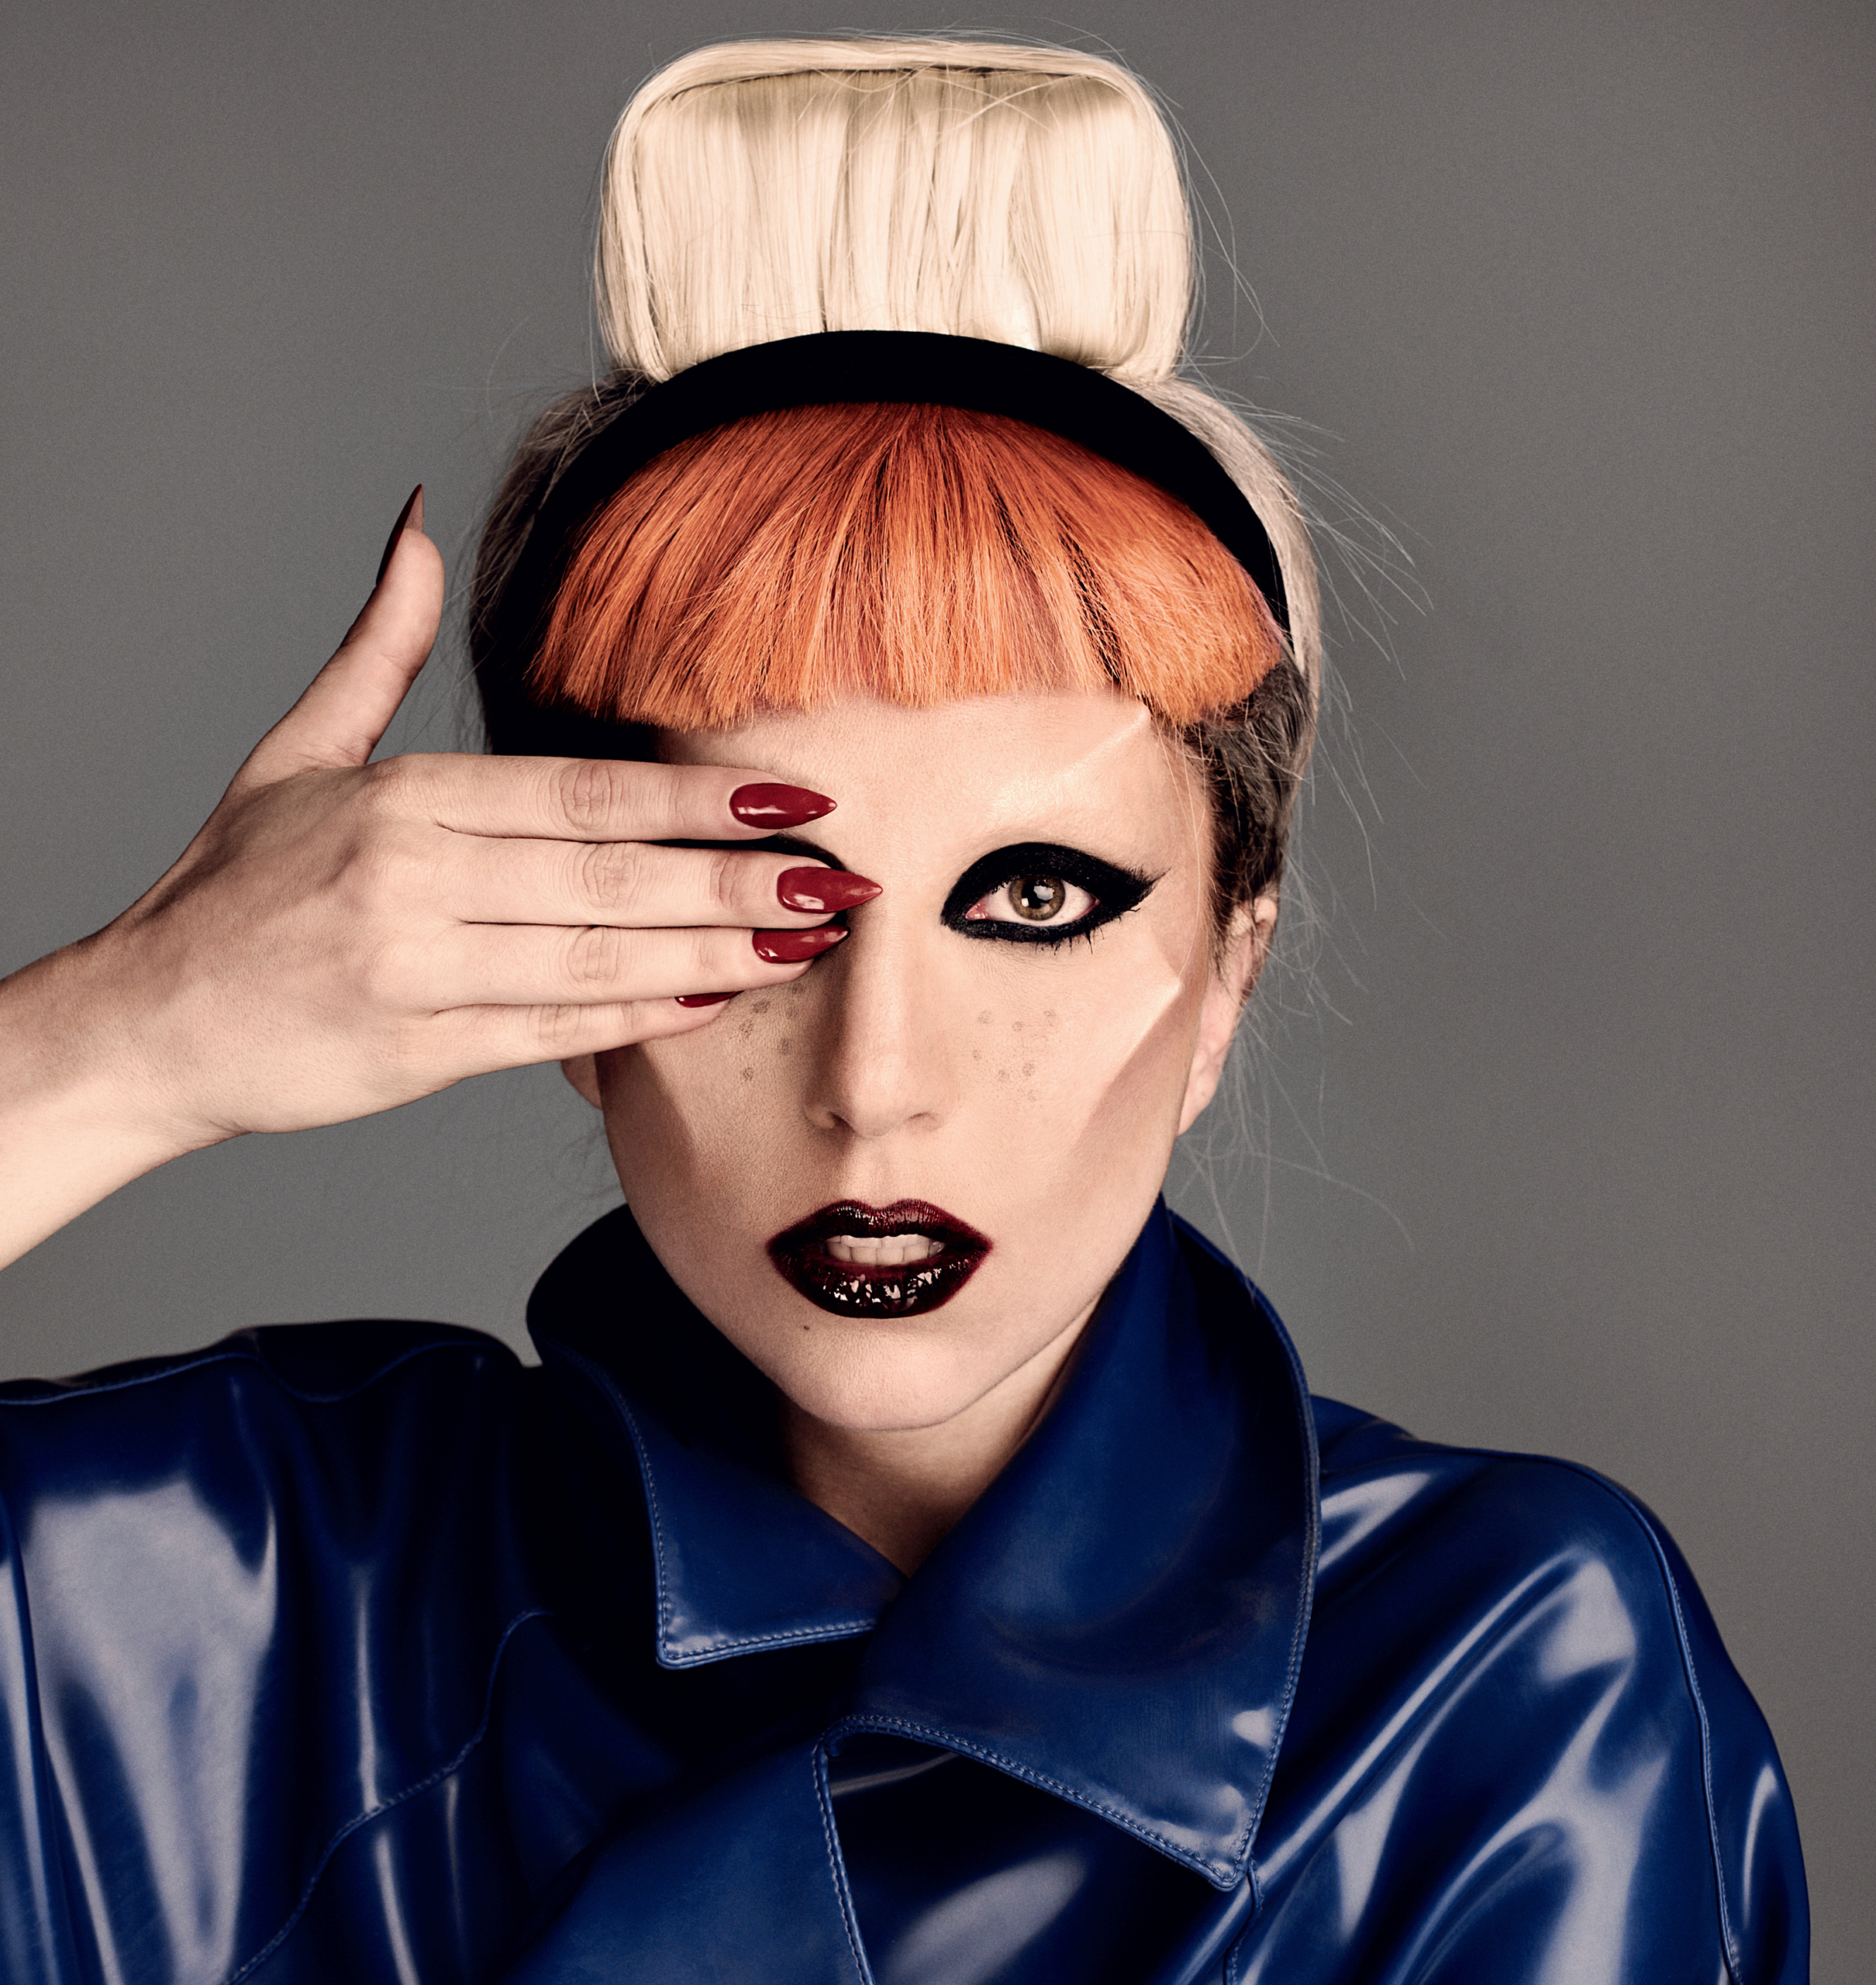 Lady Gaga Mariano Vivanco Photoshoot Super Hq Lady Gaga Photo 25788290 Fanpop Meet the super humans at our super awesome workplace! fanpop